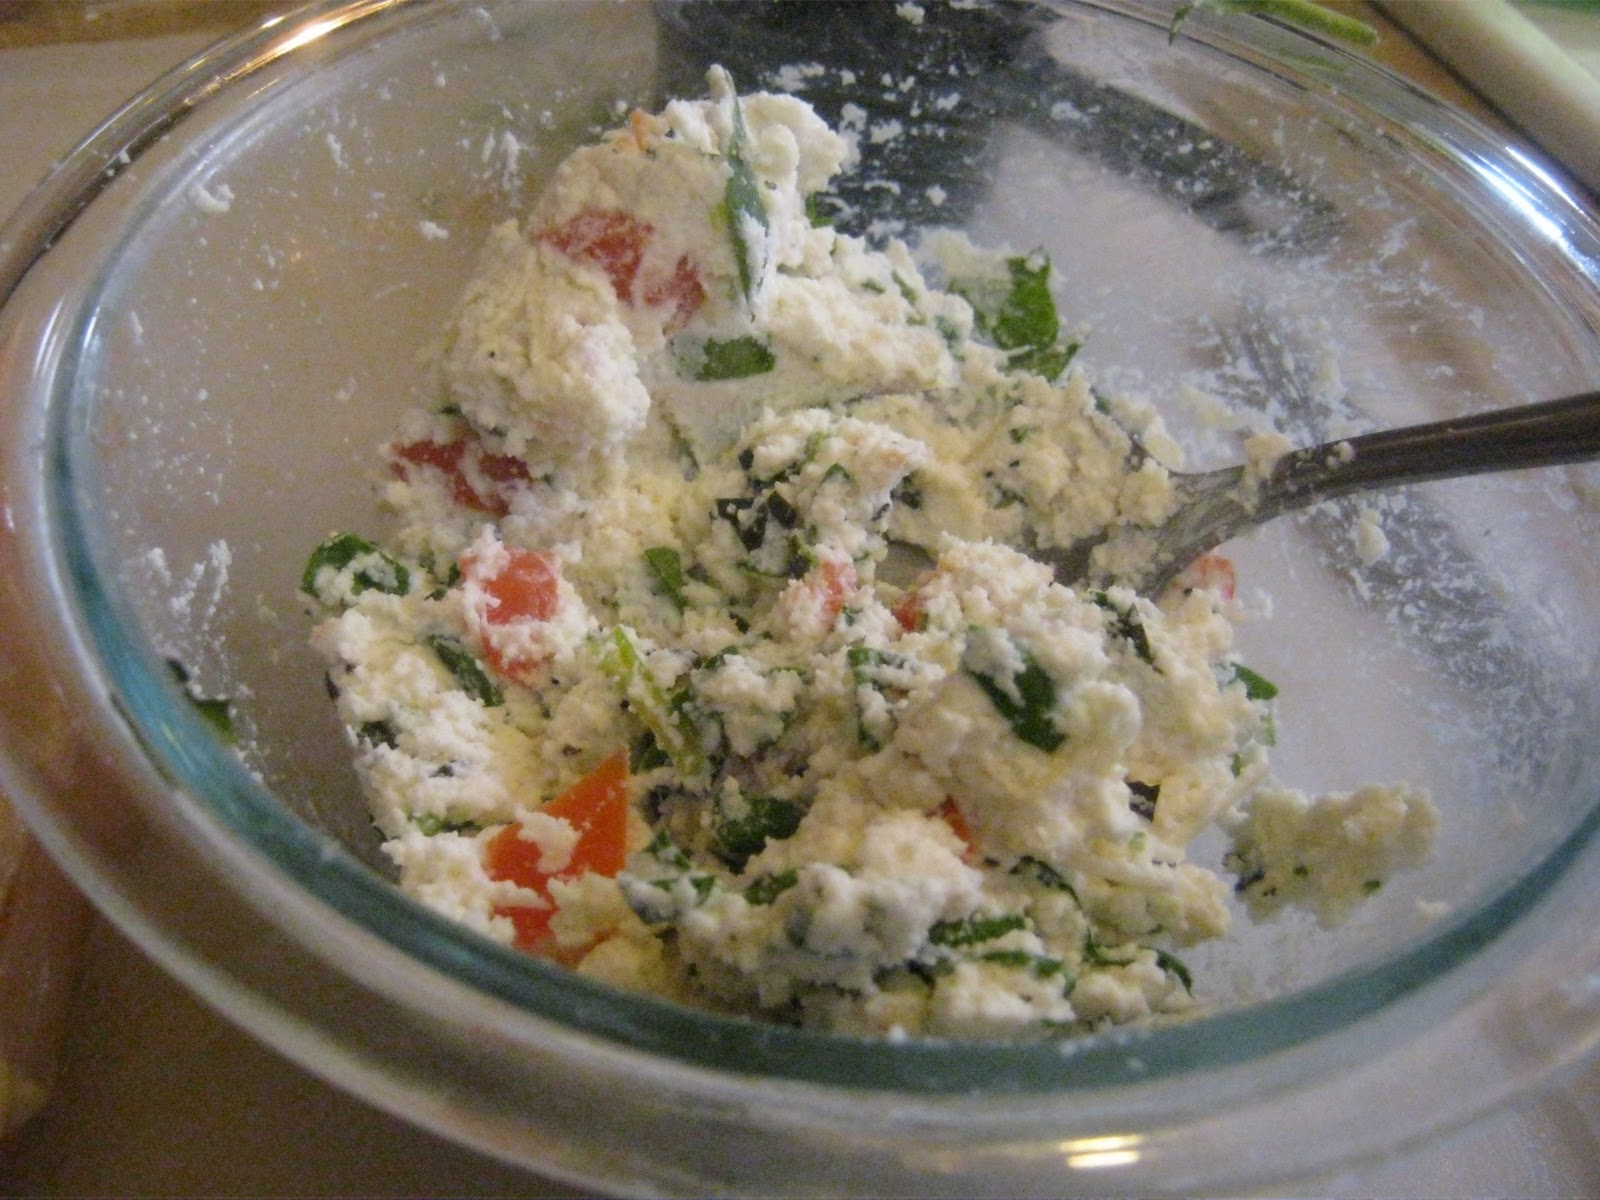 Mix together the ricotta, spinach, tomatoes,Parmesan cheese, basil ...